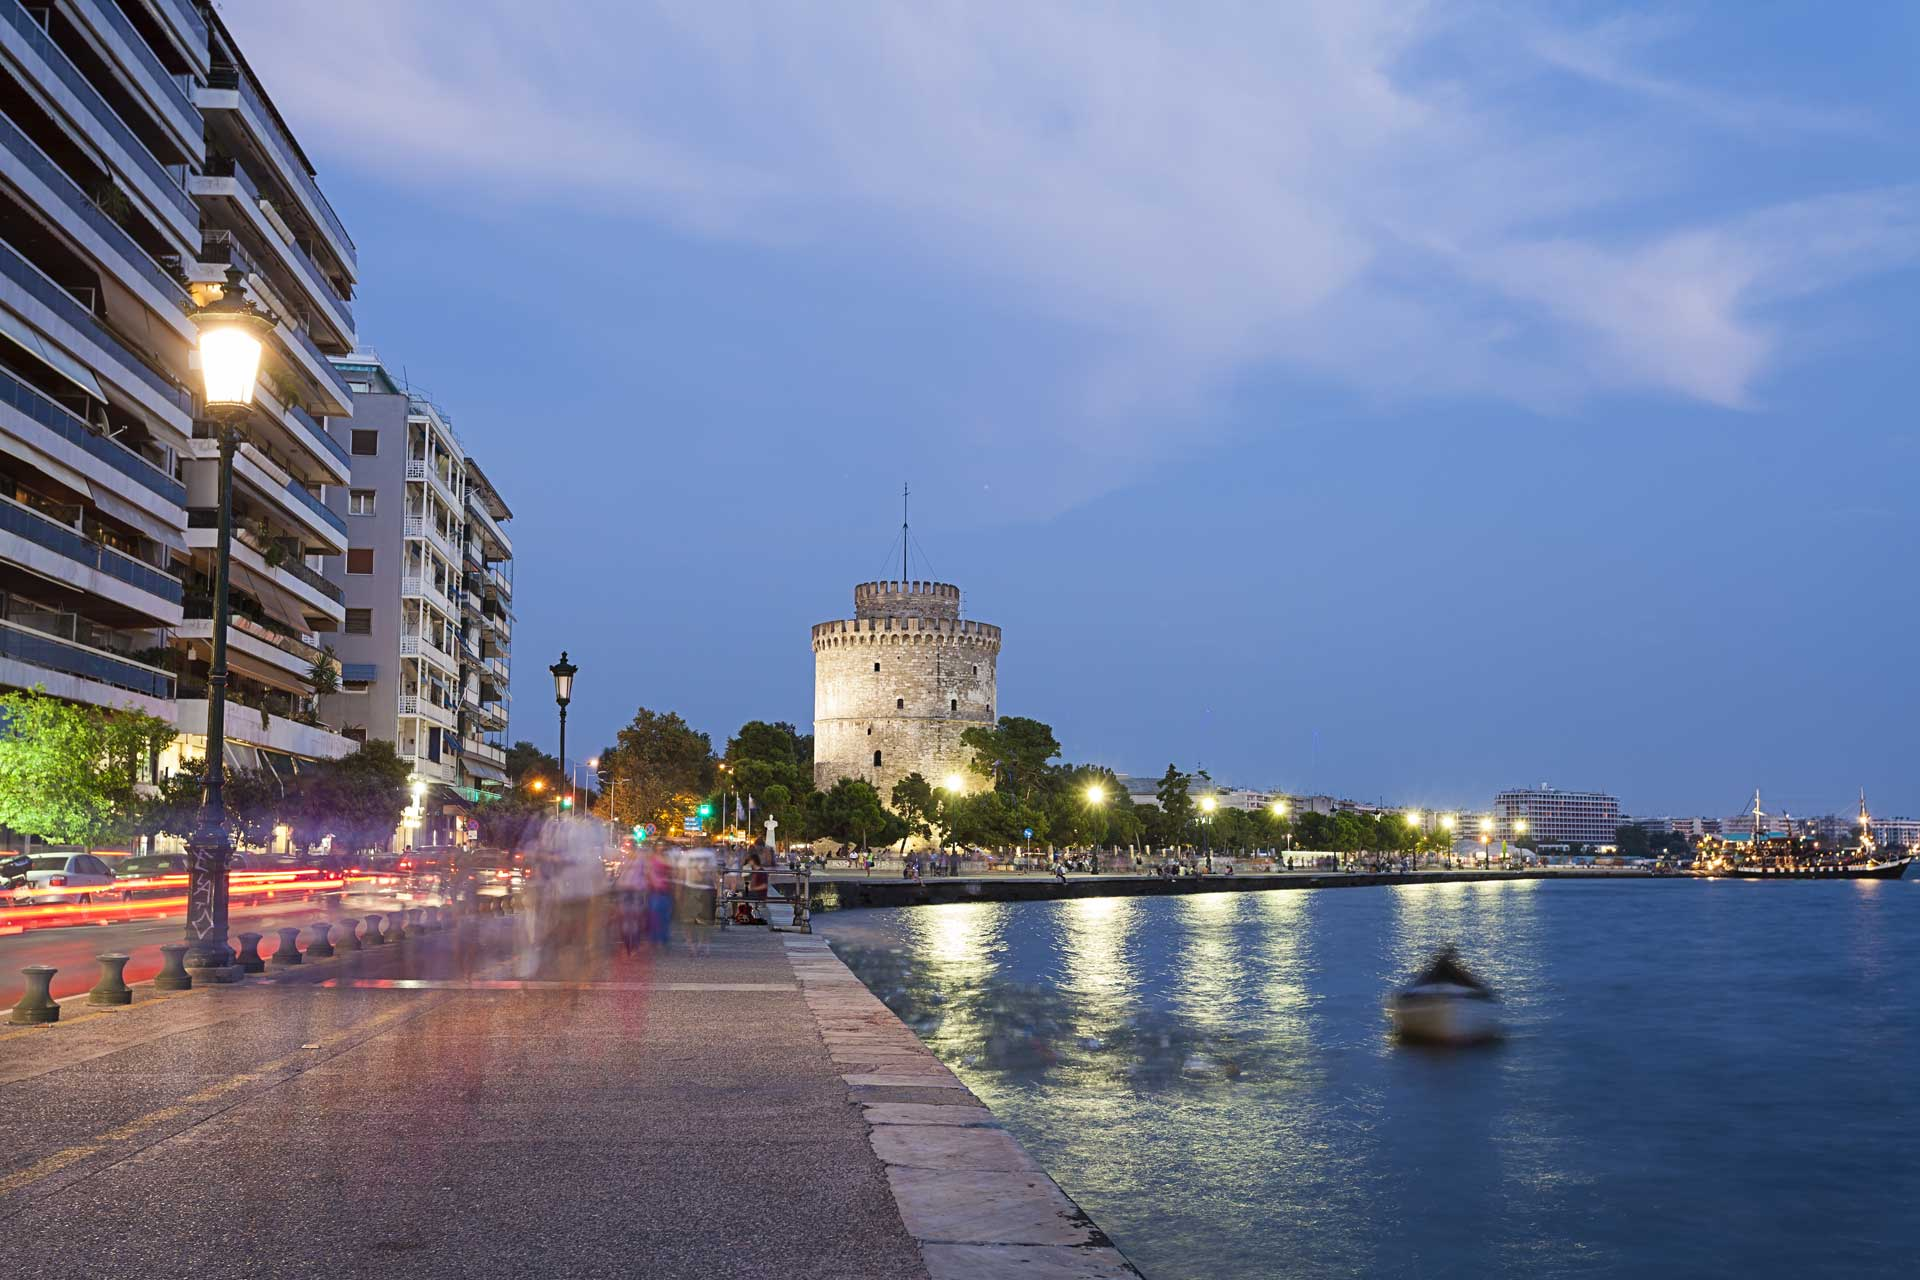 The Mindspark Thessaloniki 2019